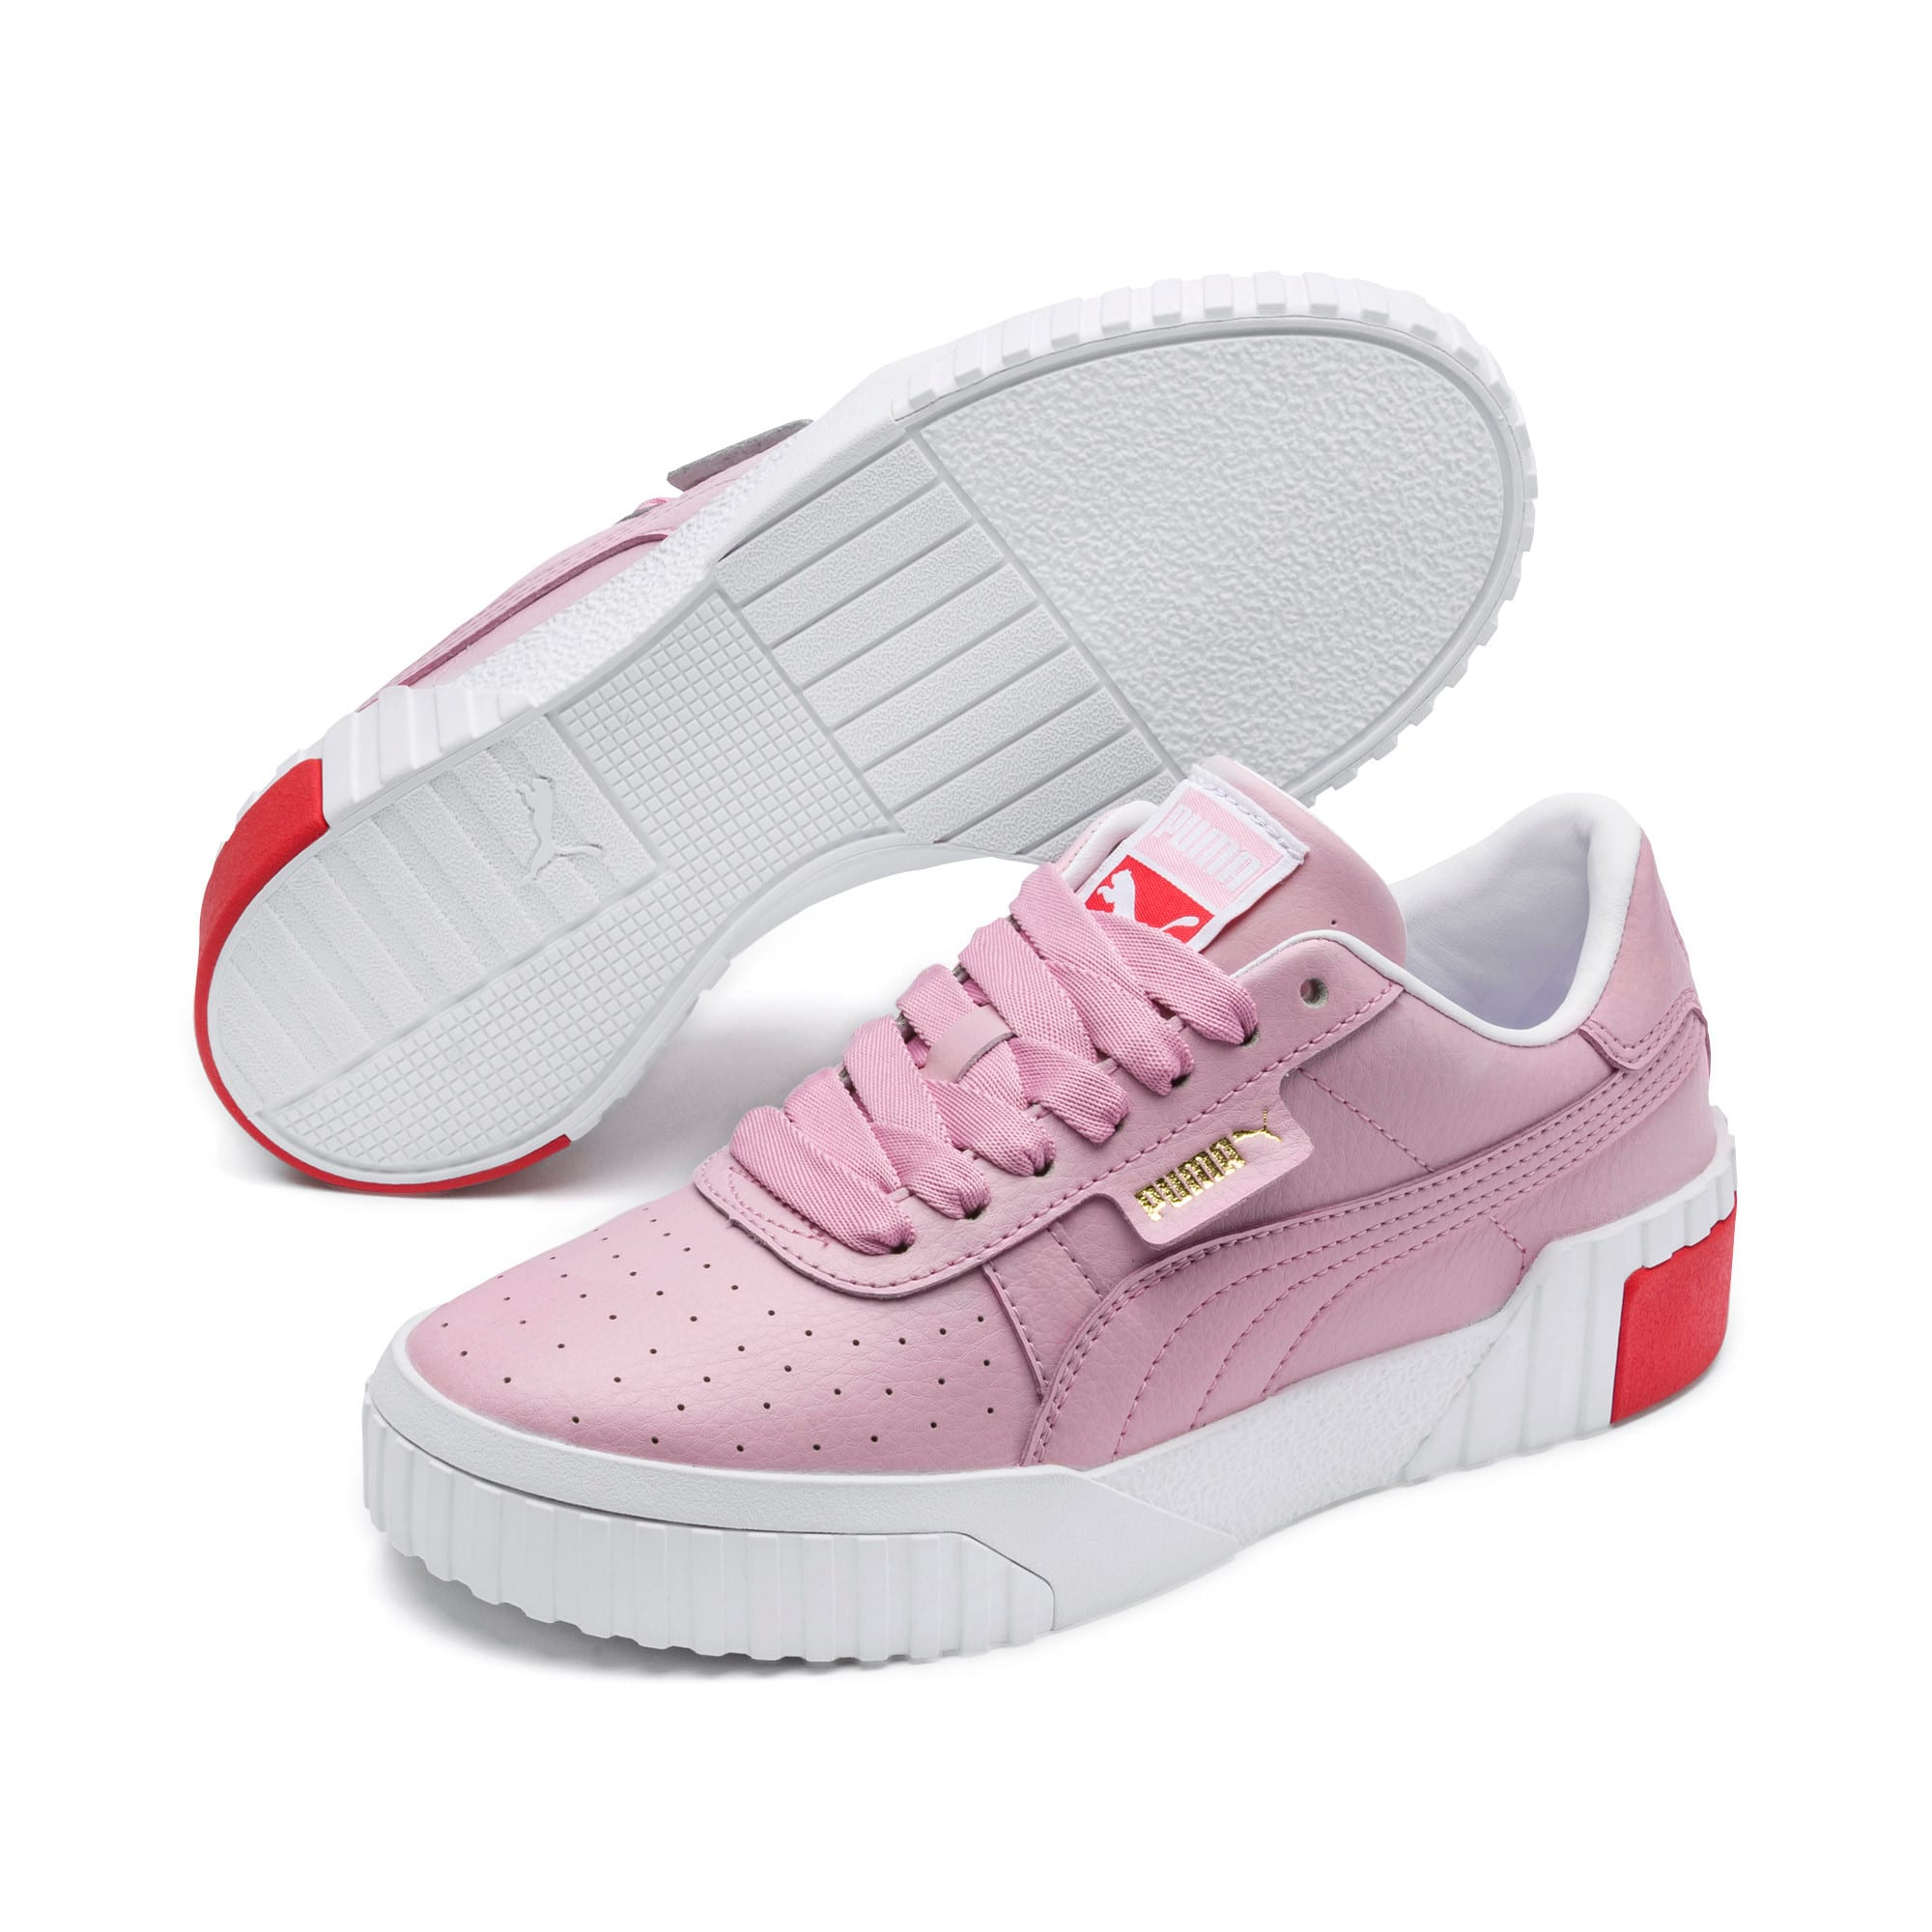 Thumbnail 2 of Cali Girls' Trainers, Puma White-Hibiscus, medium